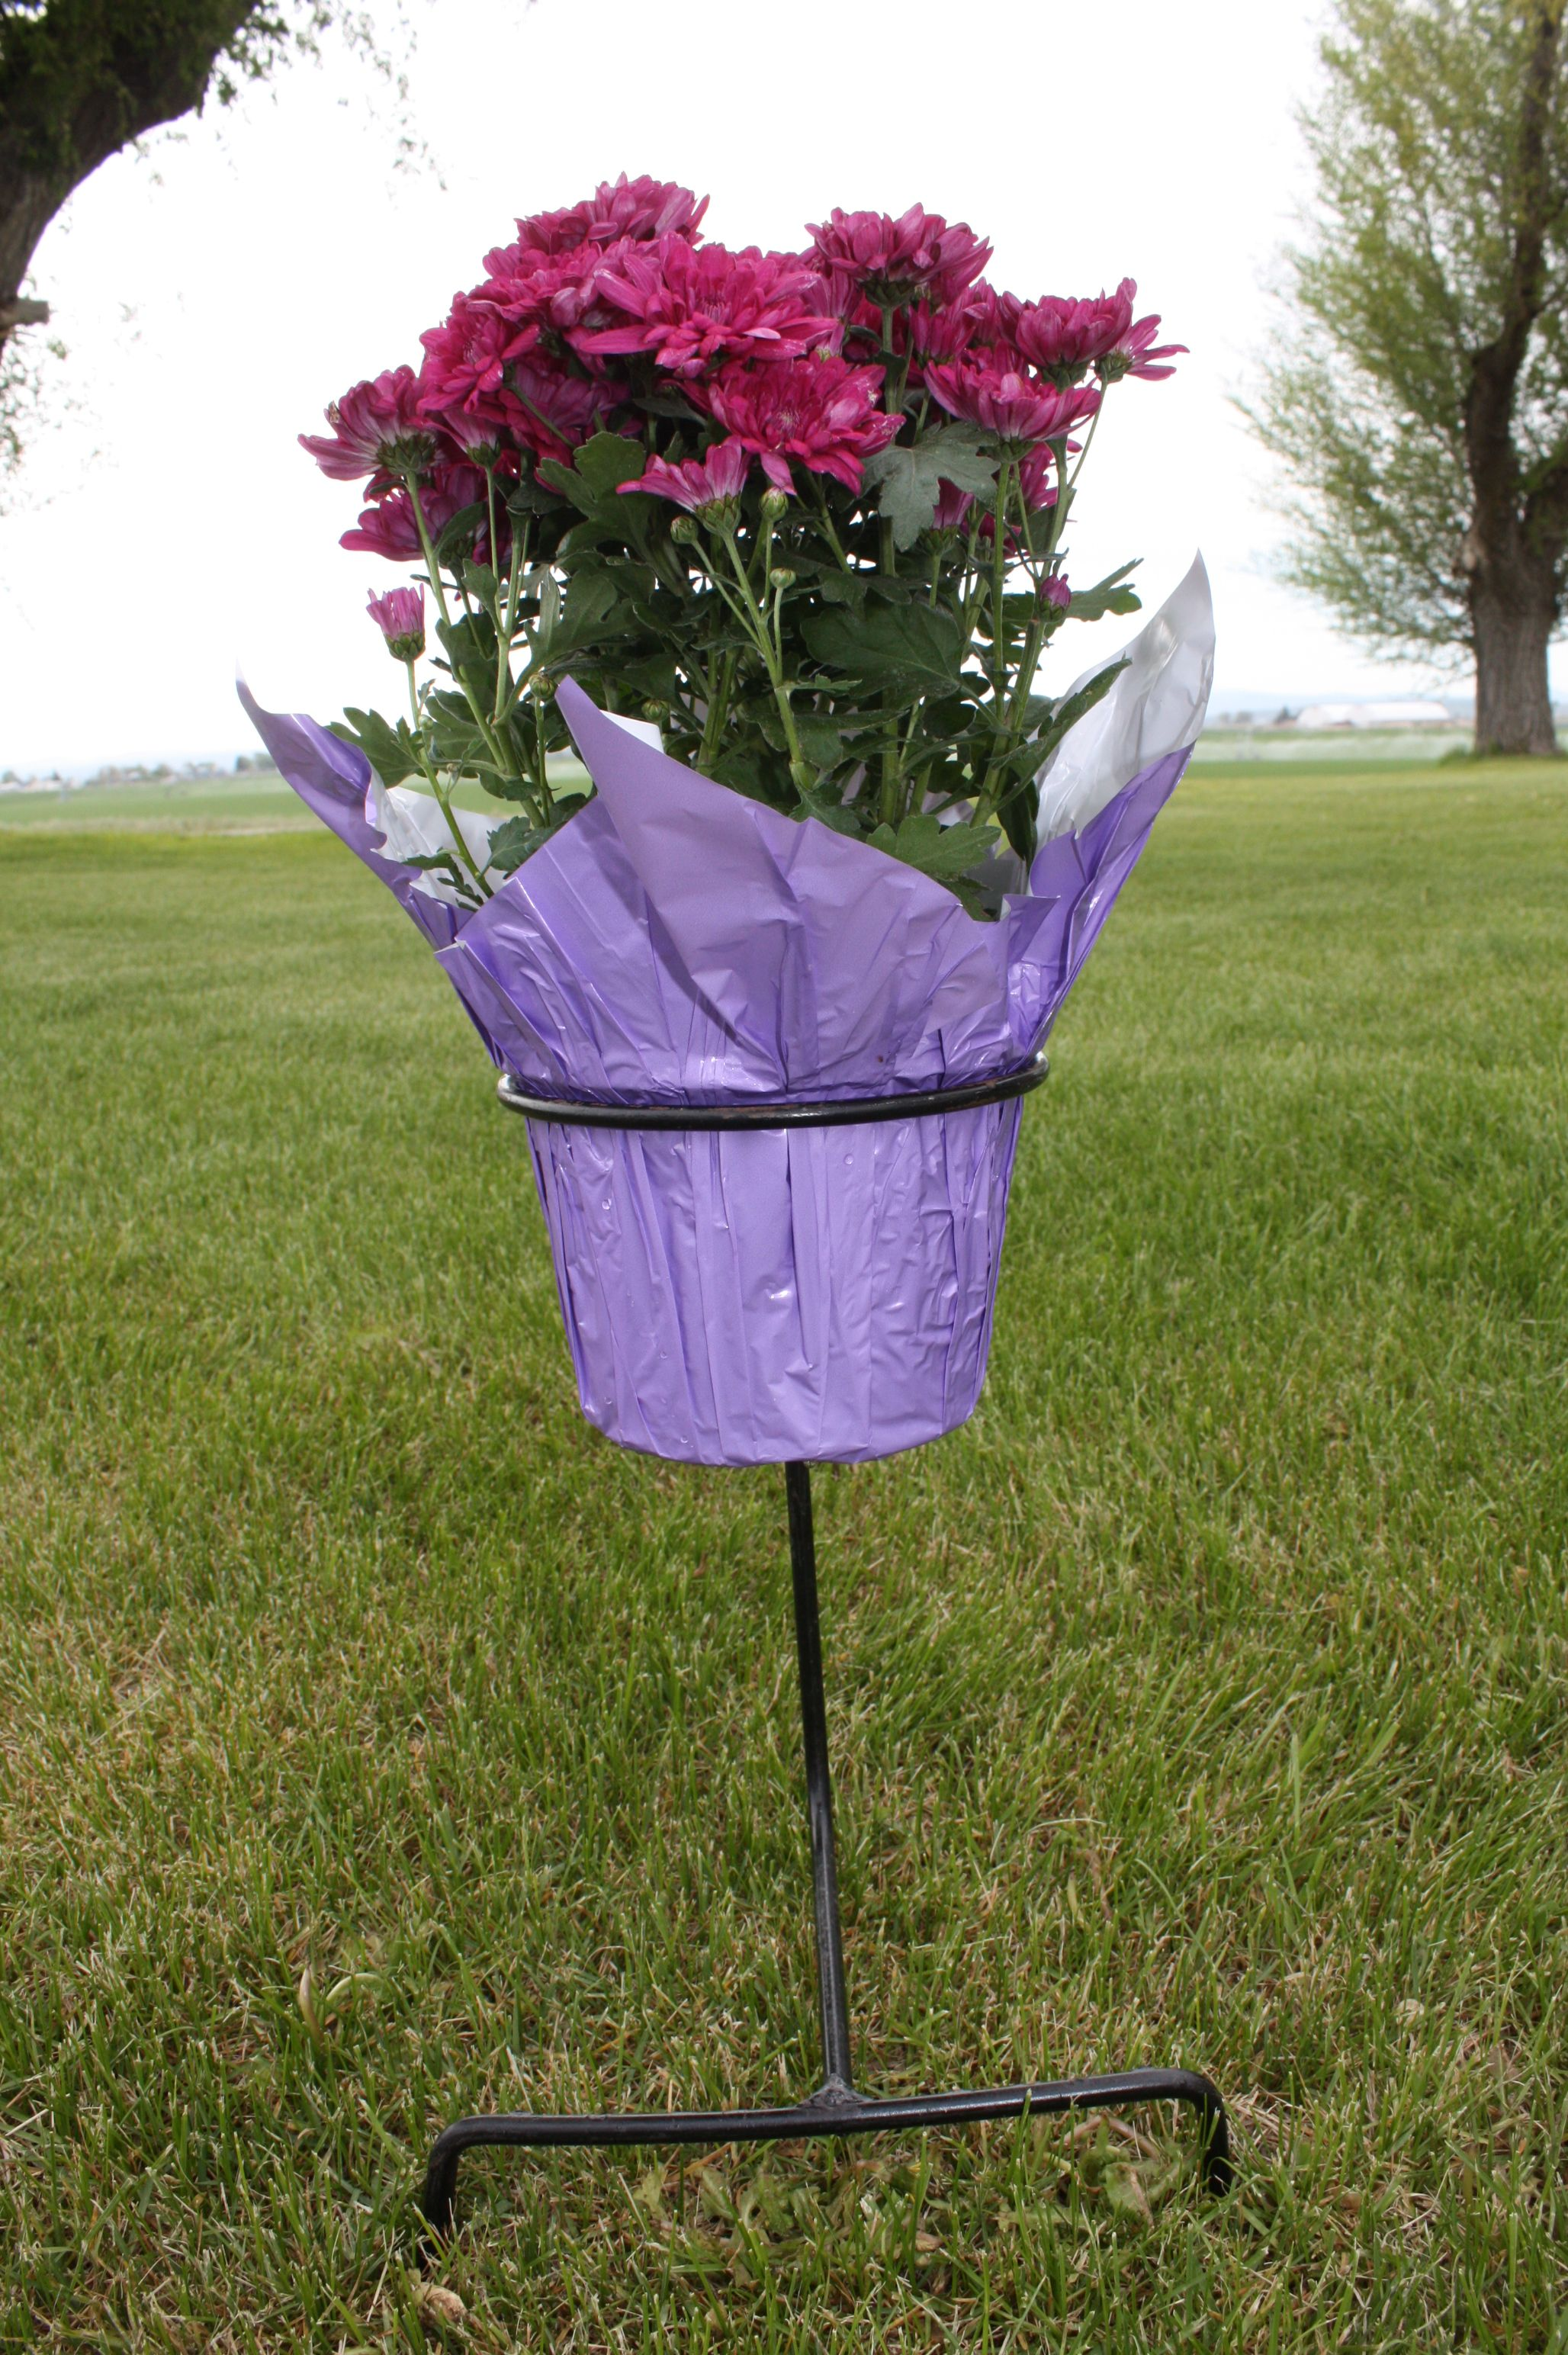 Green Wire Wreath Cemetery Holders Center With Linearregulator Current Source Circuit Diagram Tradeoficcom Rod Iron Flower Pot Holder Keeps Plant In Place At The Graveside Or Rh Pinterest Com